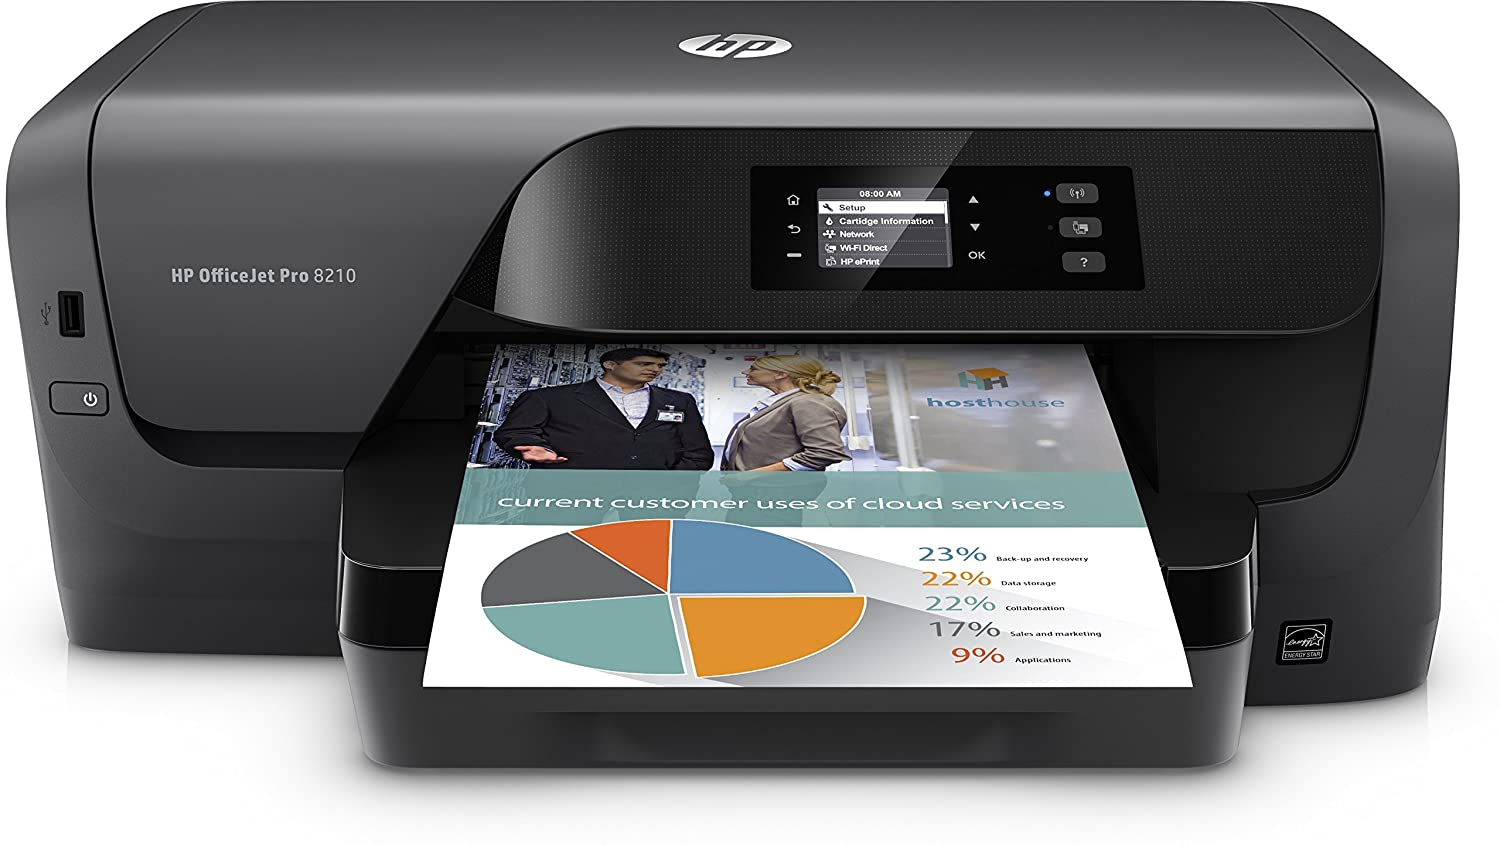 HP Impresora OFFICEJET Pro 8210 WiFi/Duplex ...